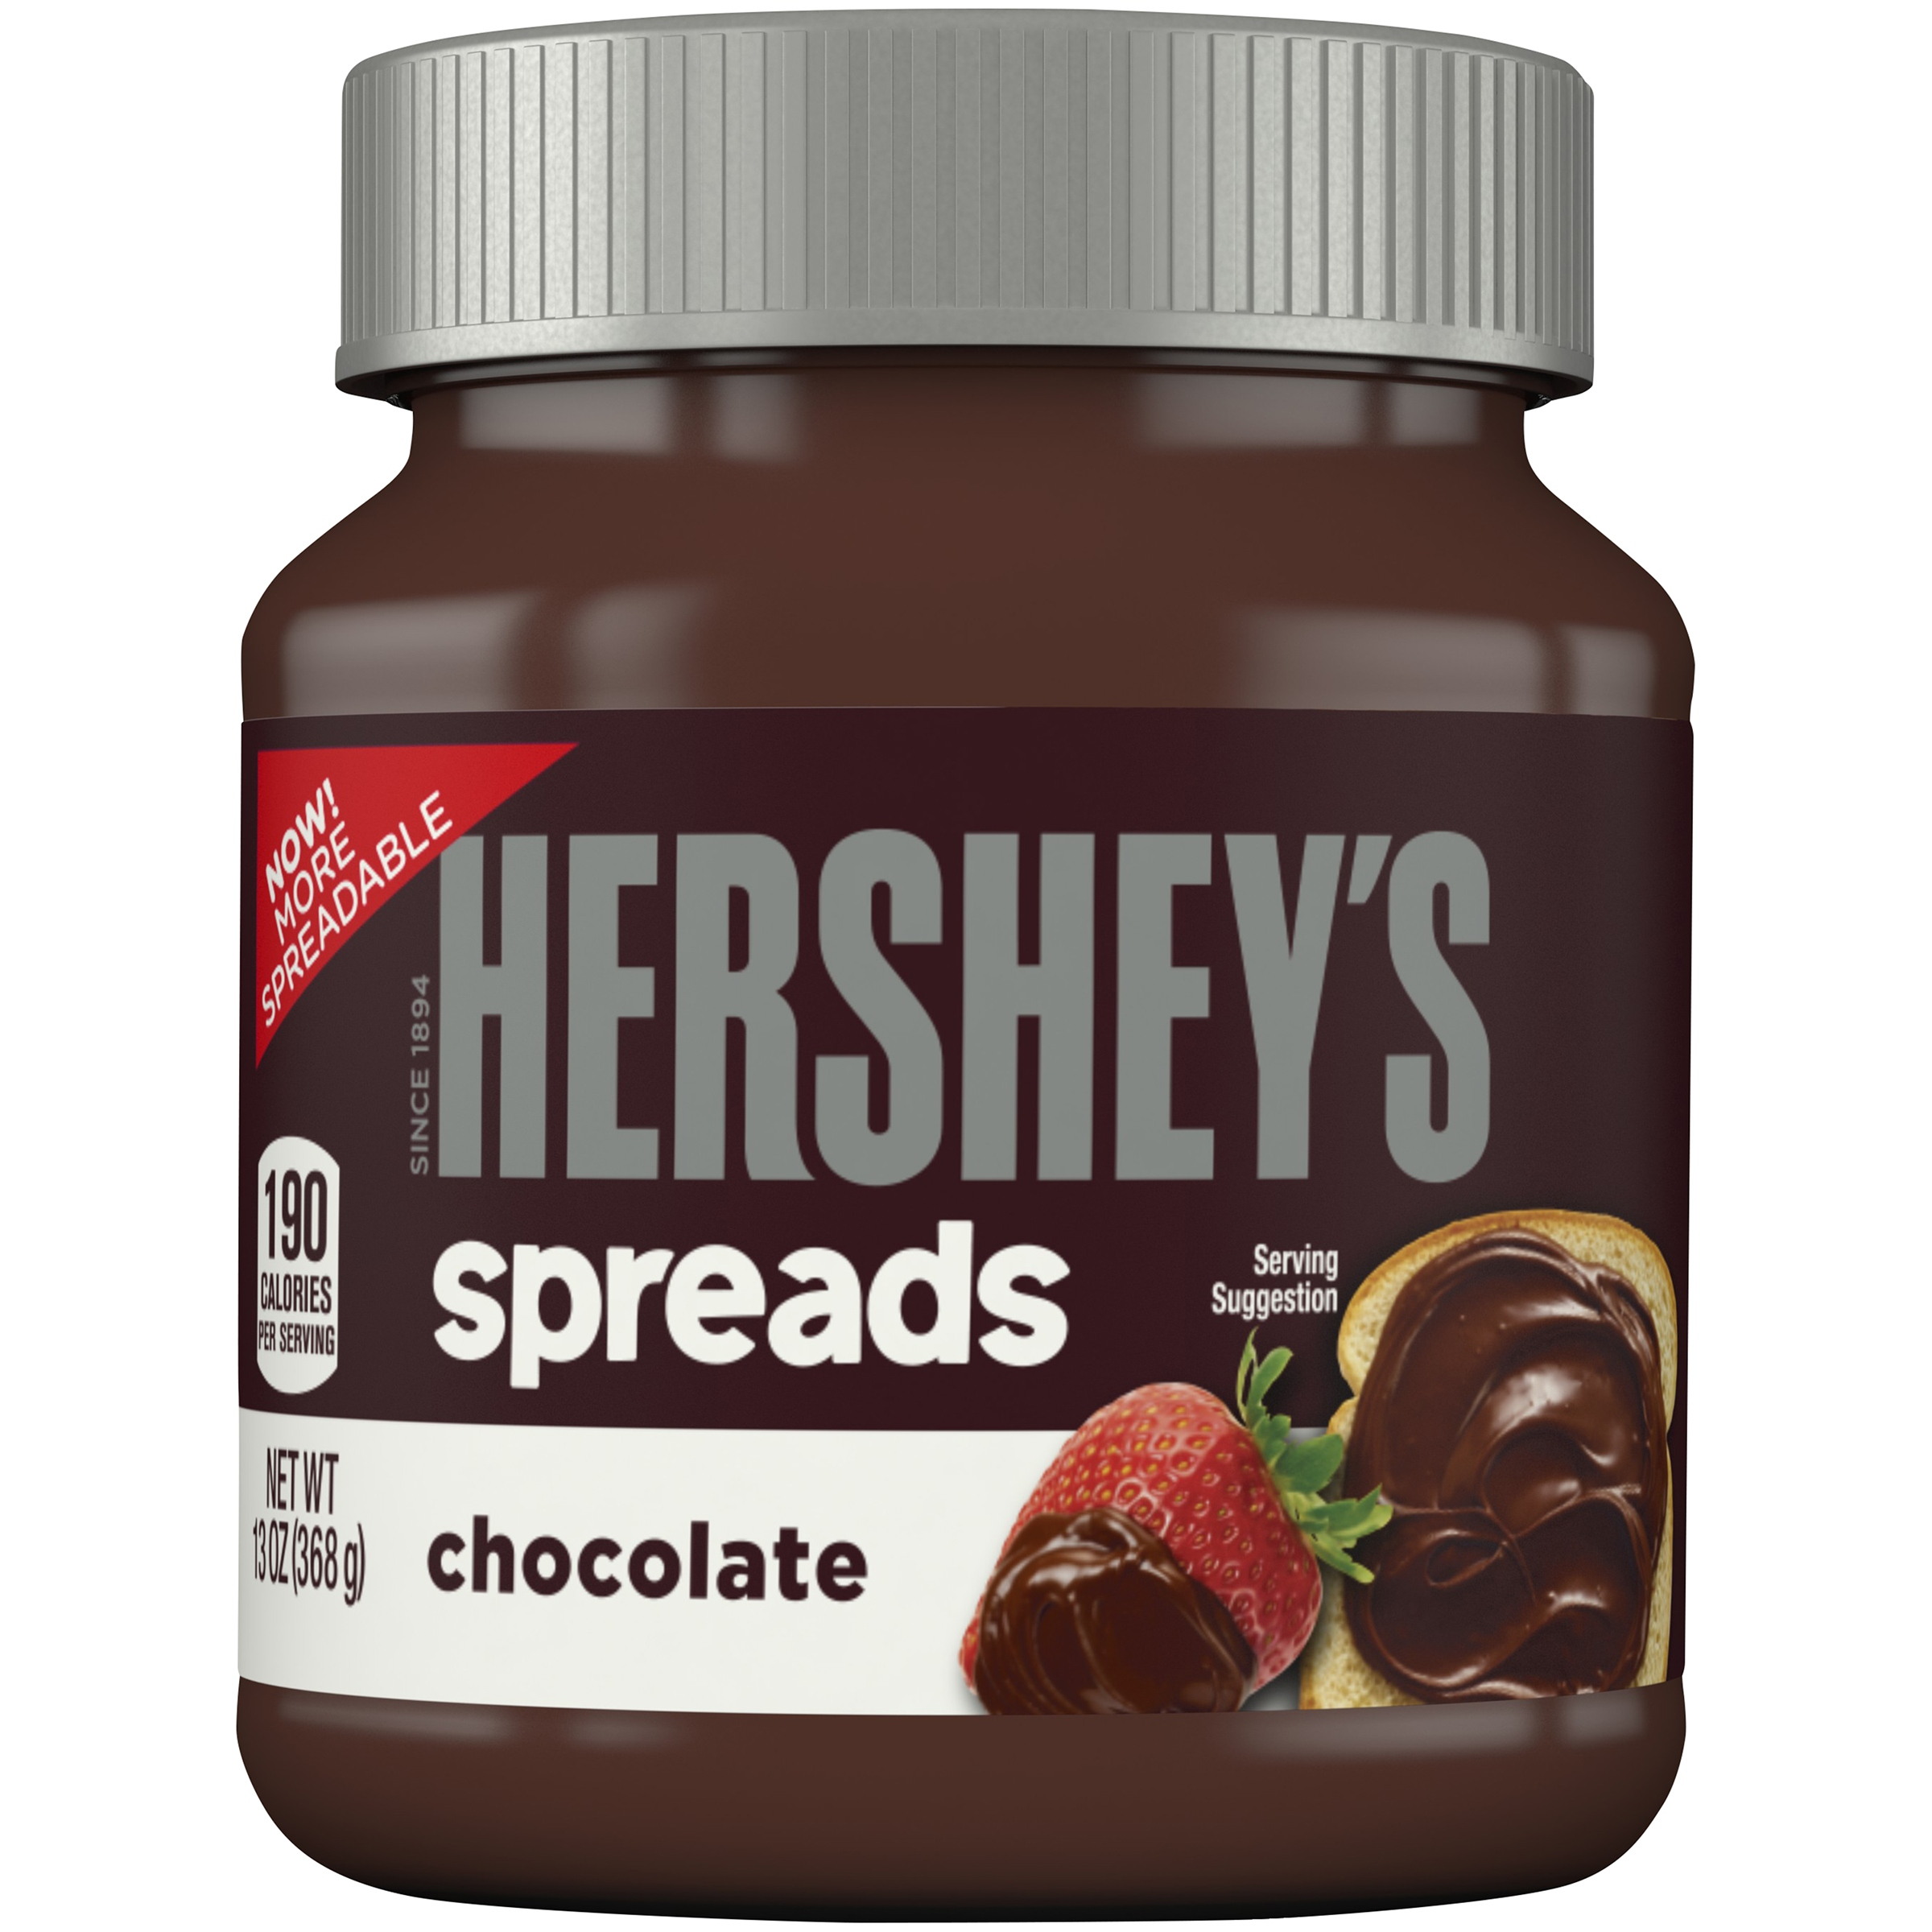 HERSHEY'S Spreads Chocolate Flavor, 13 oz